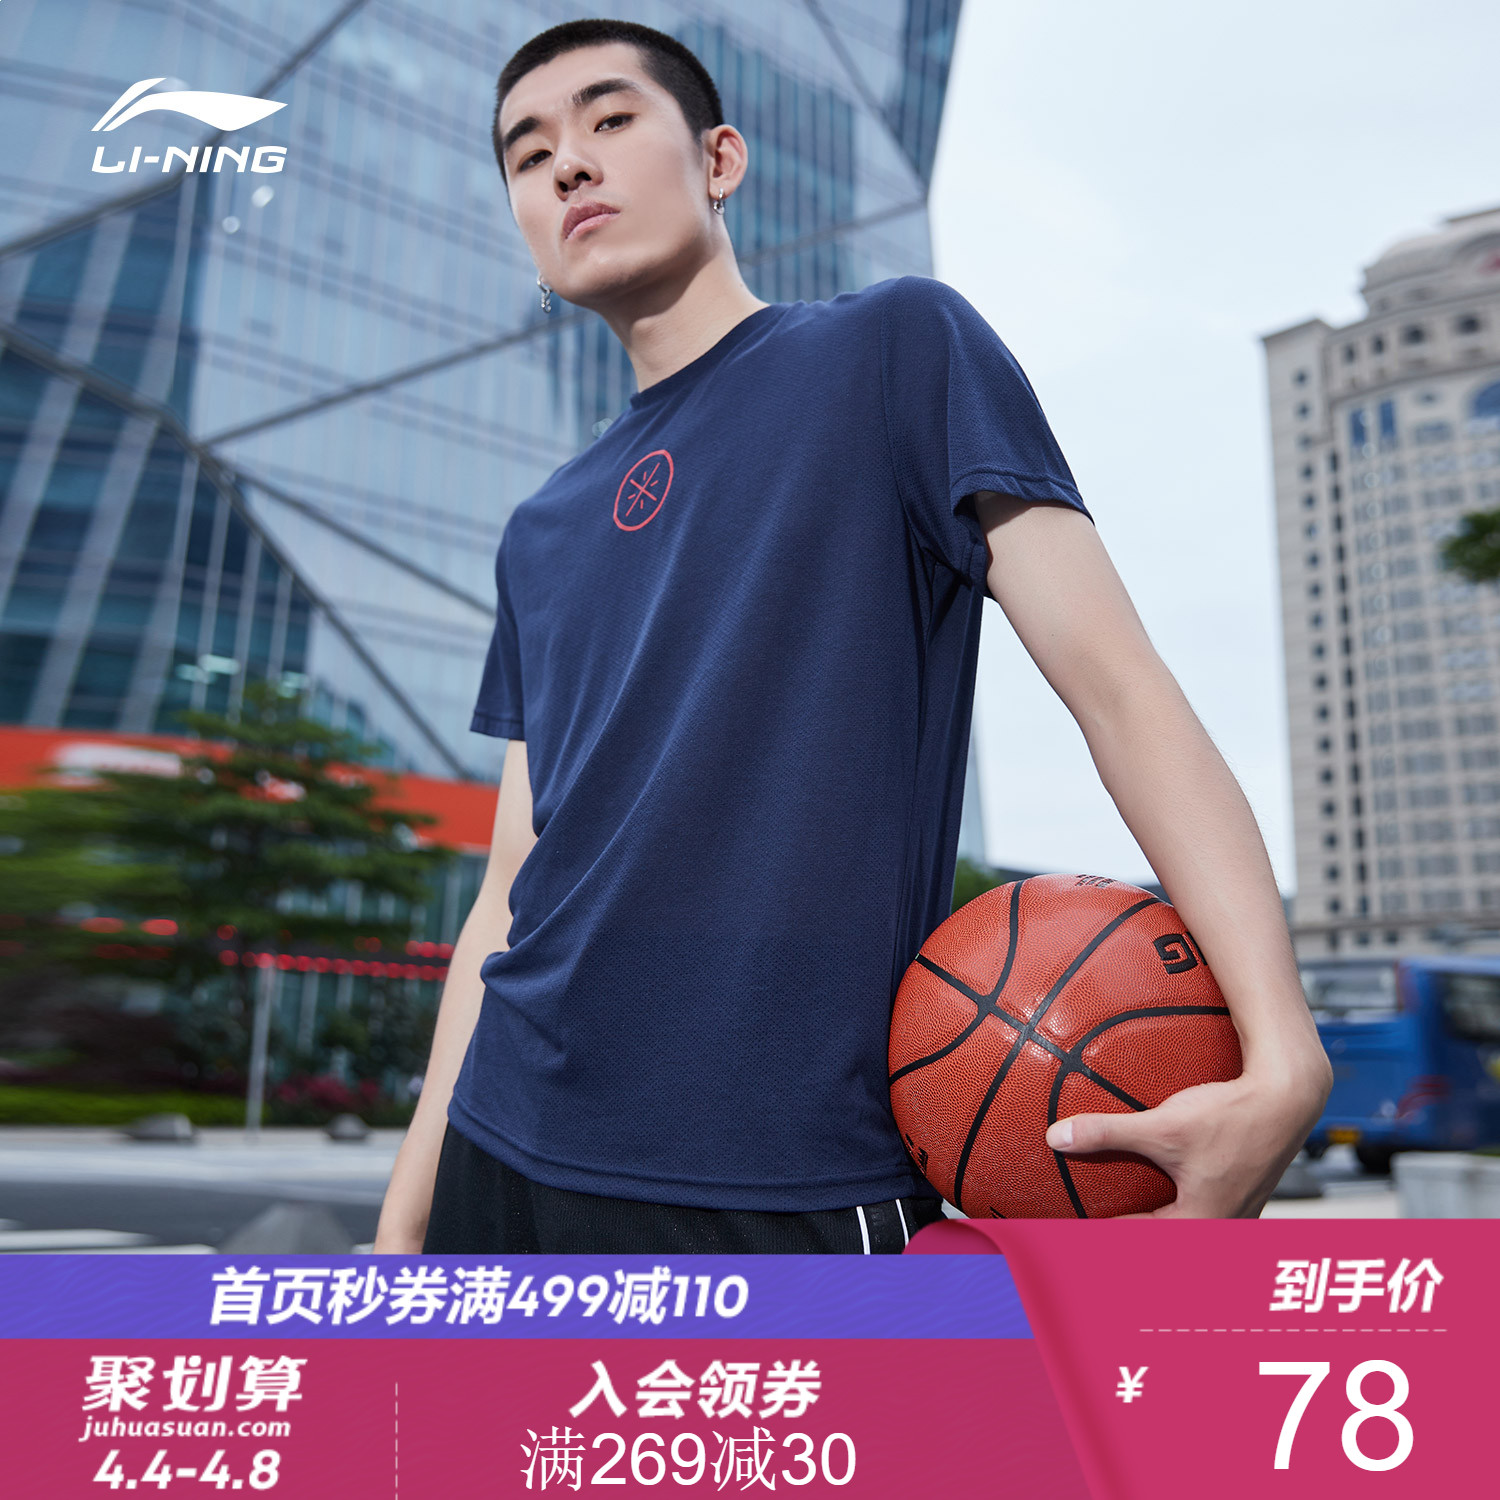 Li Ning short sleeve t-shirt men's Wade series summer round neck quick drying breathable solid running fitness top